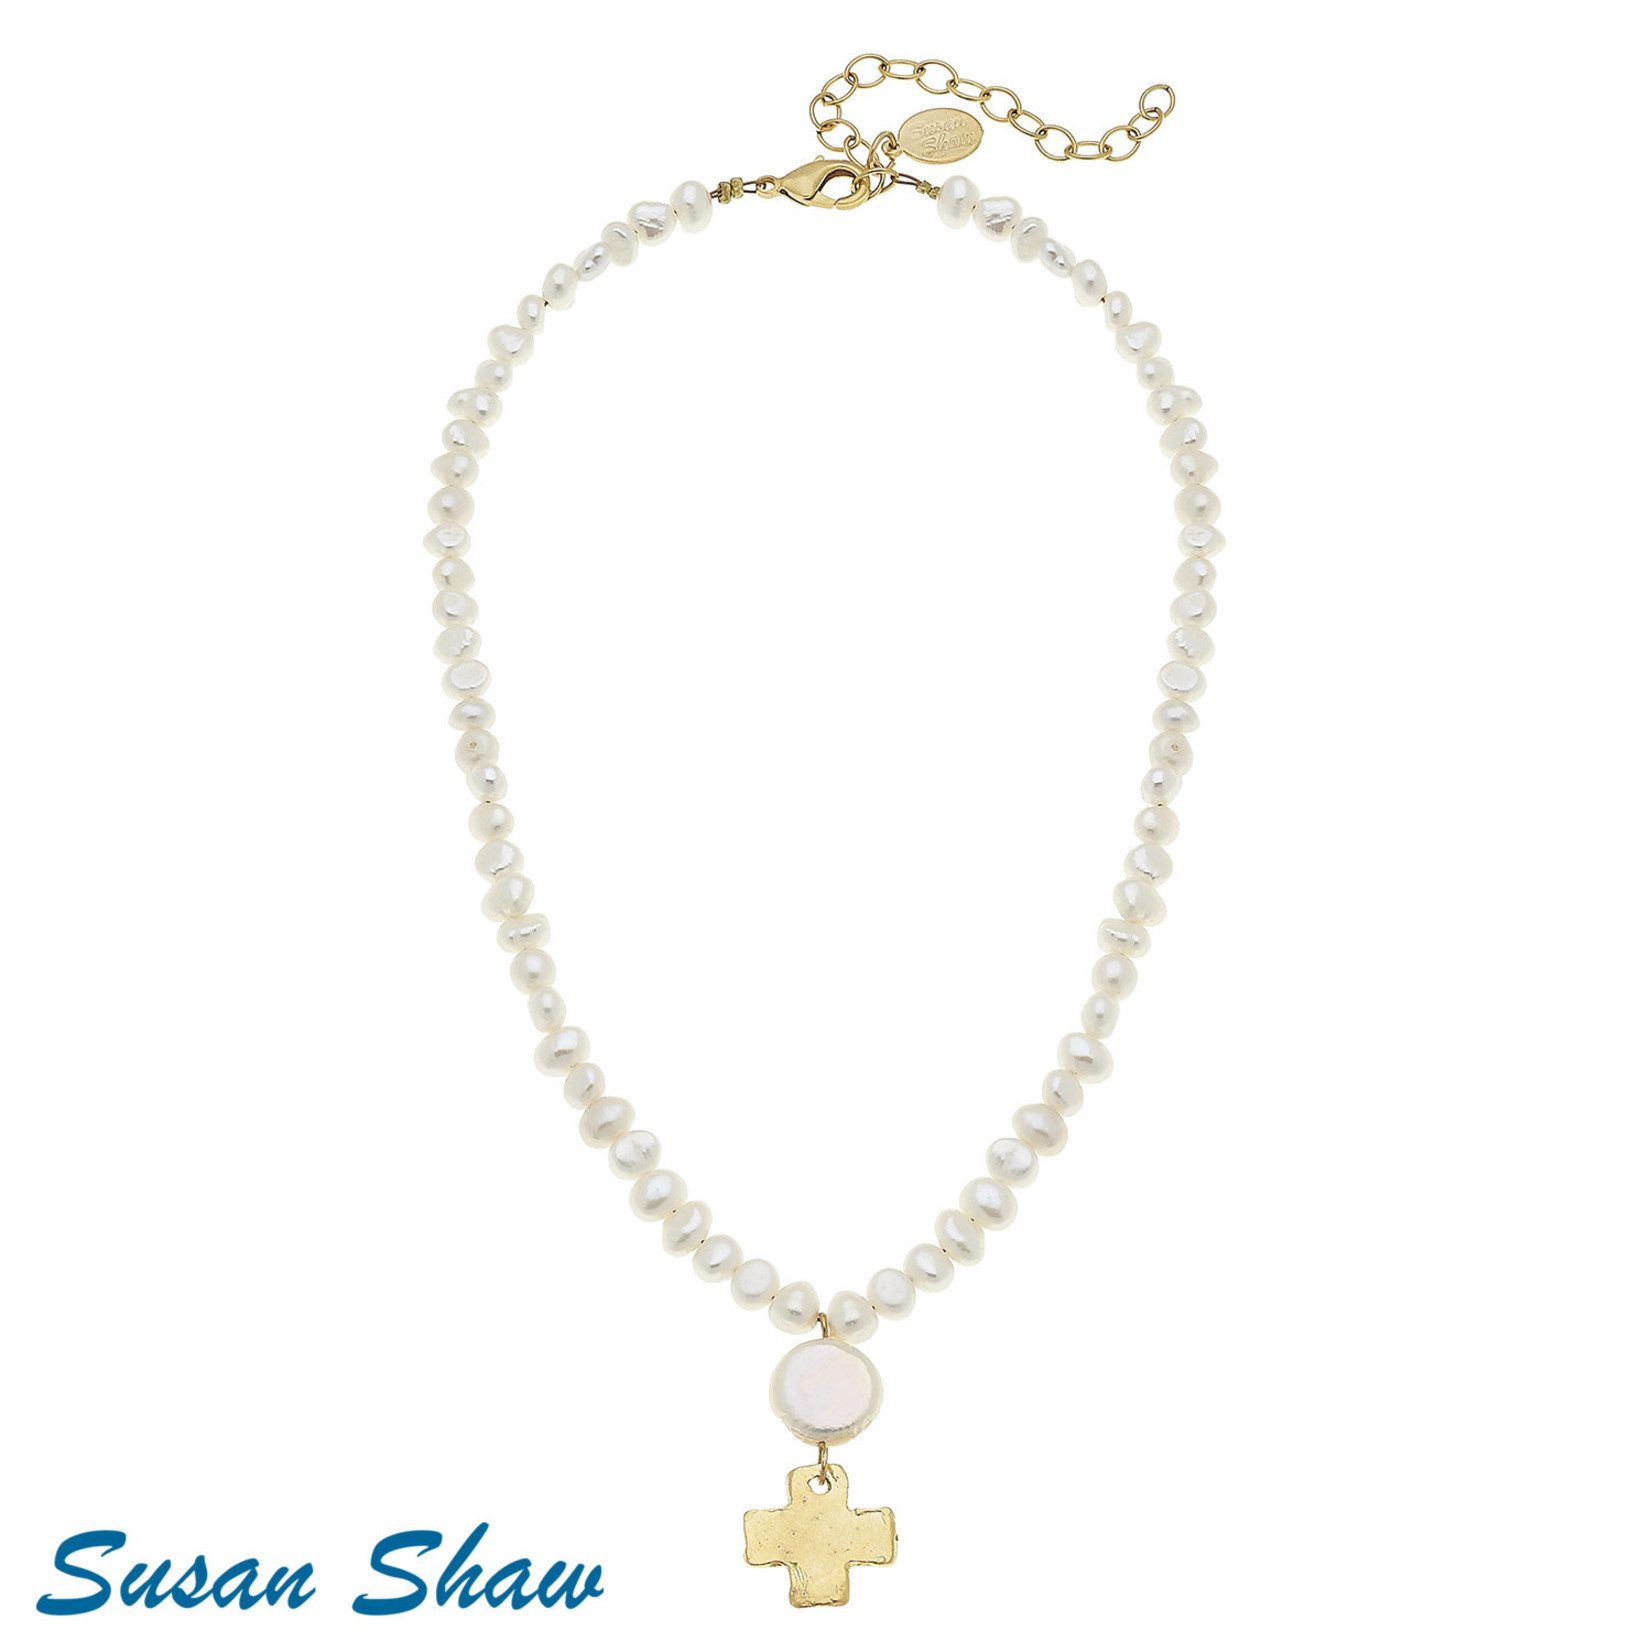 Susan Shaw Susan Shaw Gold Cross on White Pearl Necklace